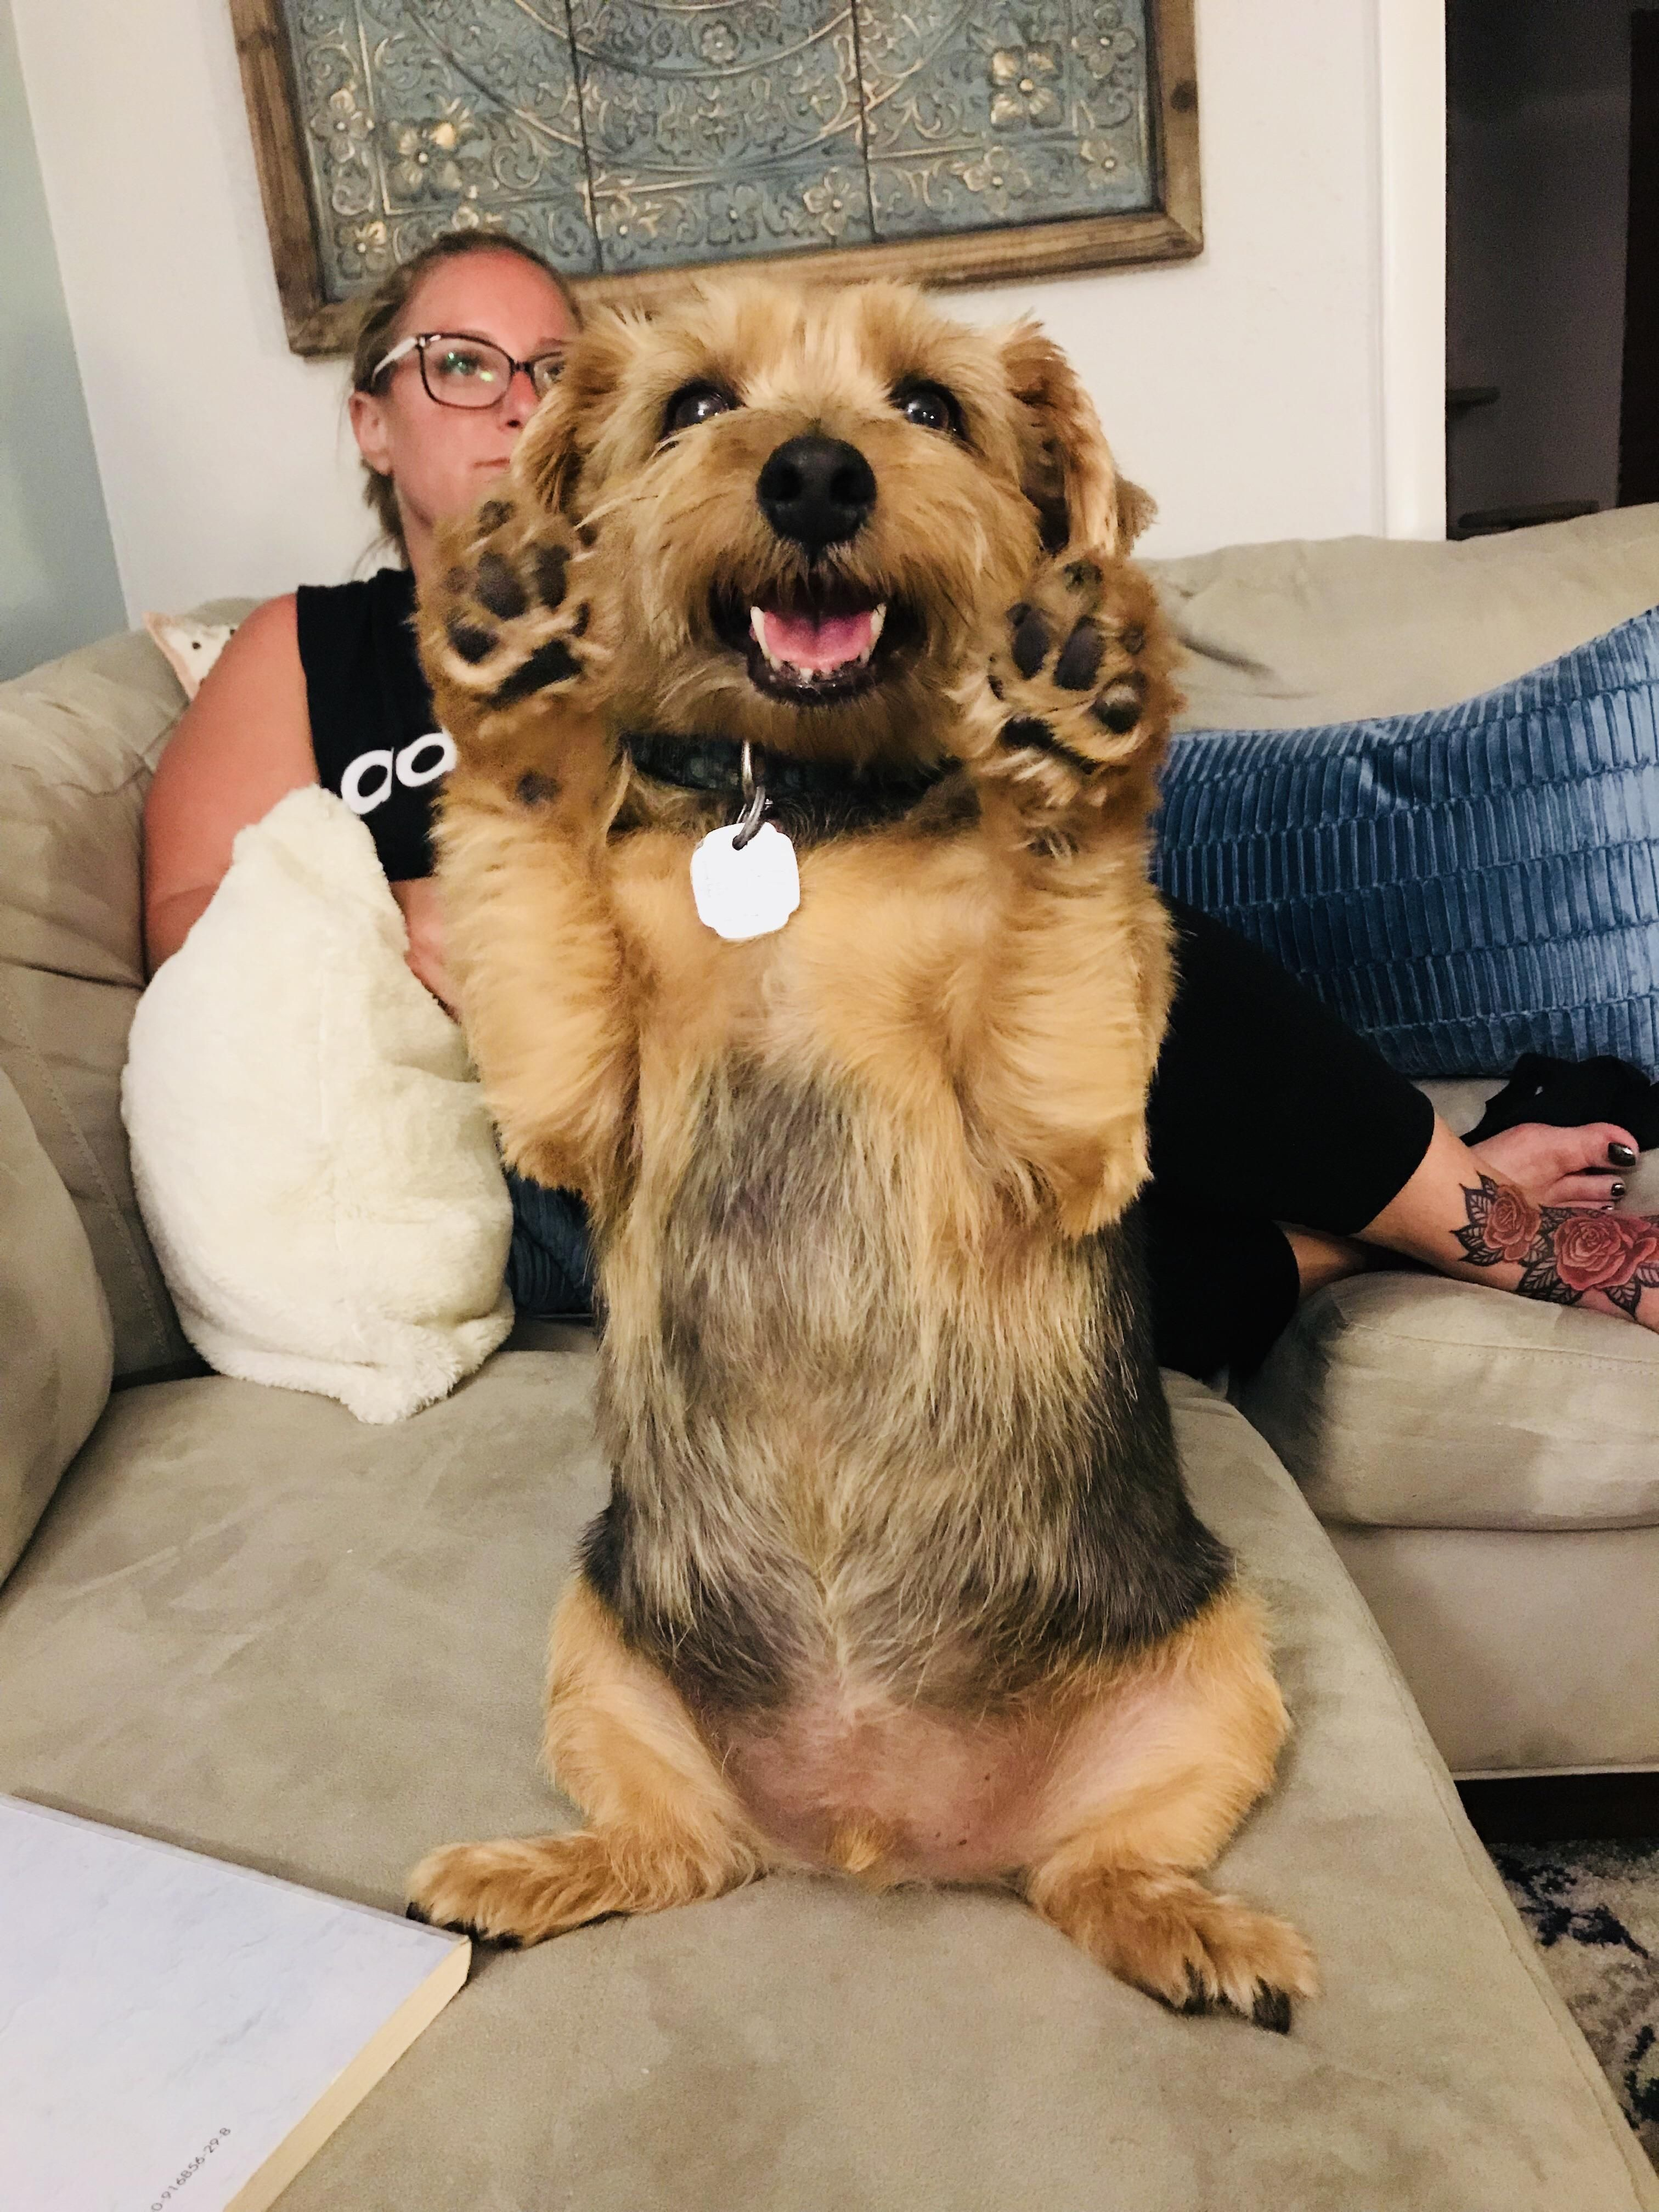 My friend was babysitting this pupper Winston If you dont pay attention to him he sits up and raises his paws Very good boy Deserves all the attention